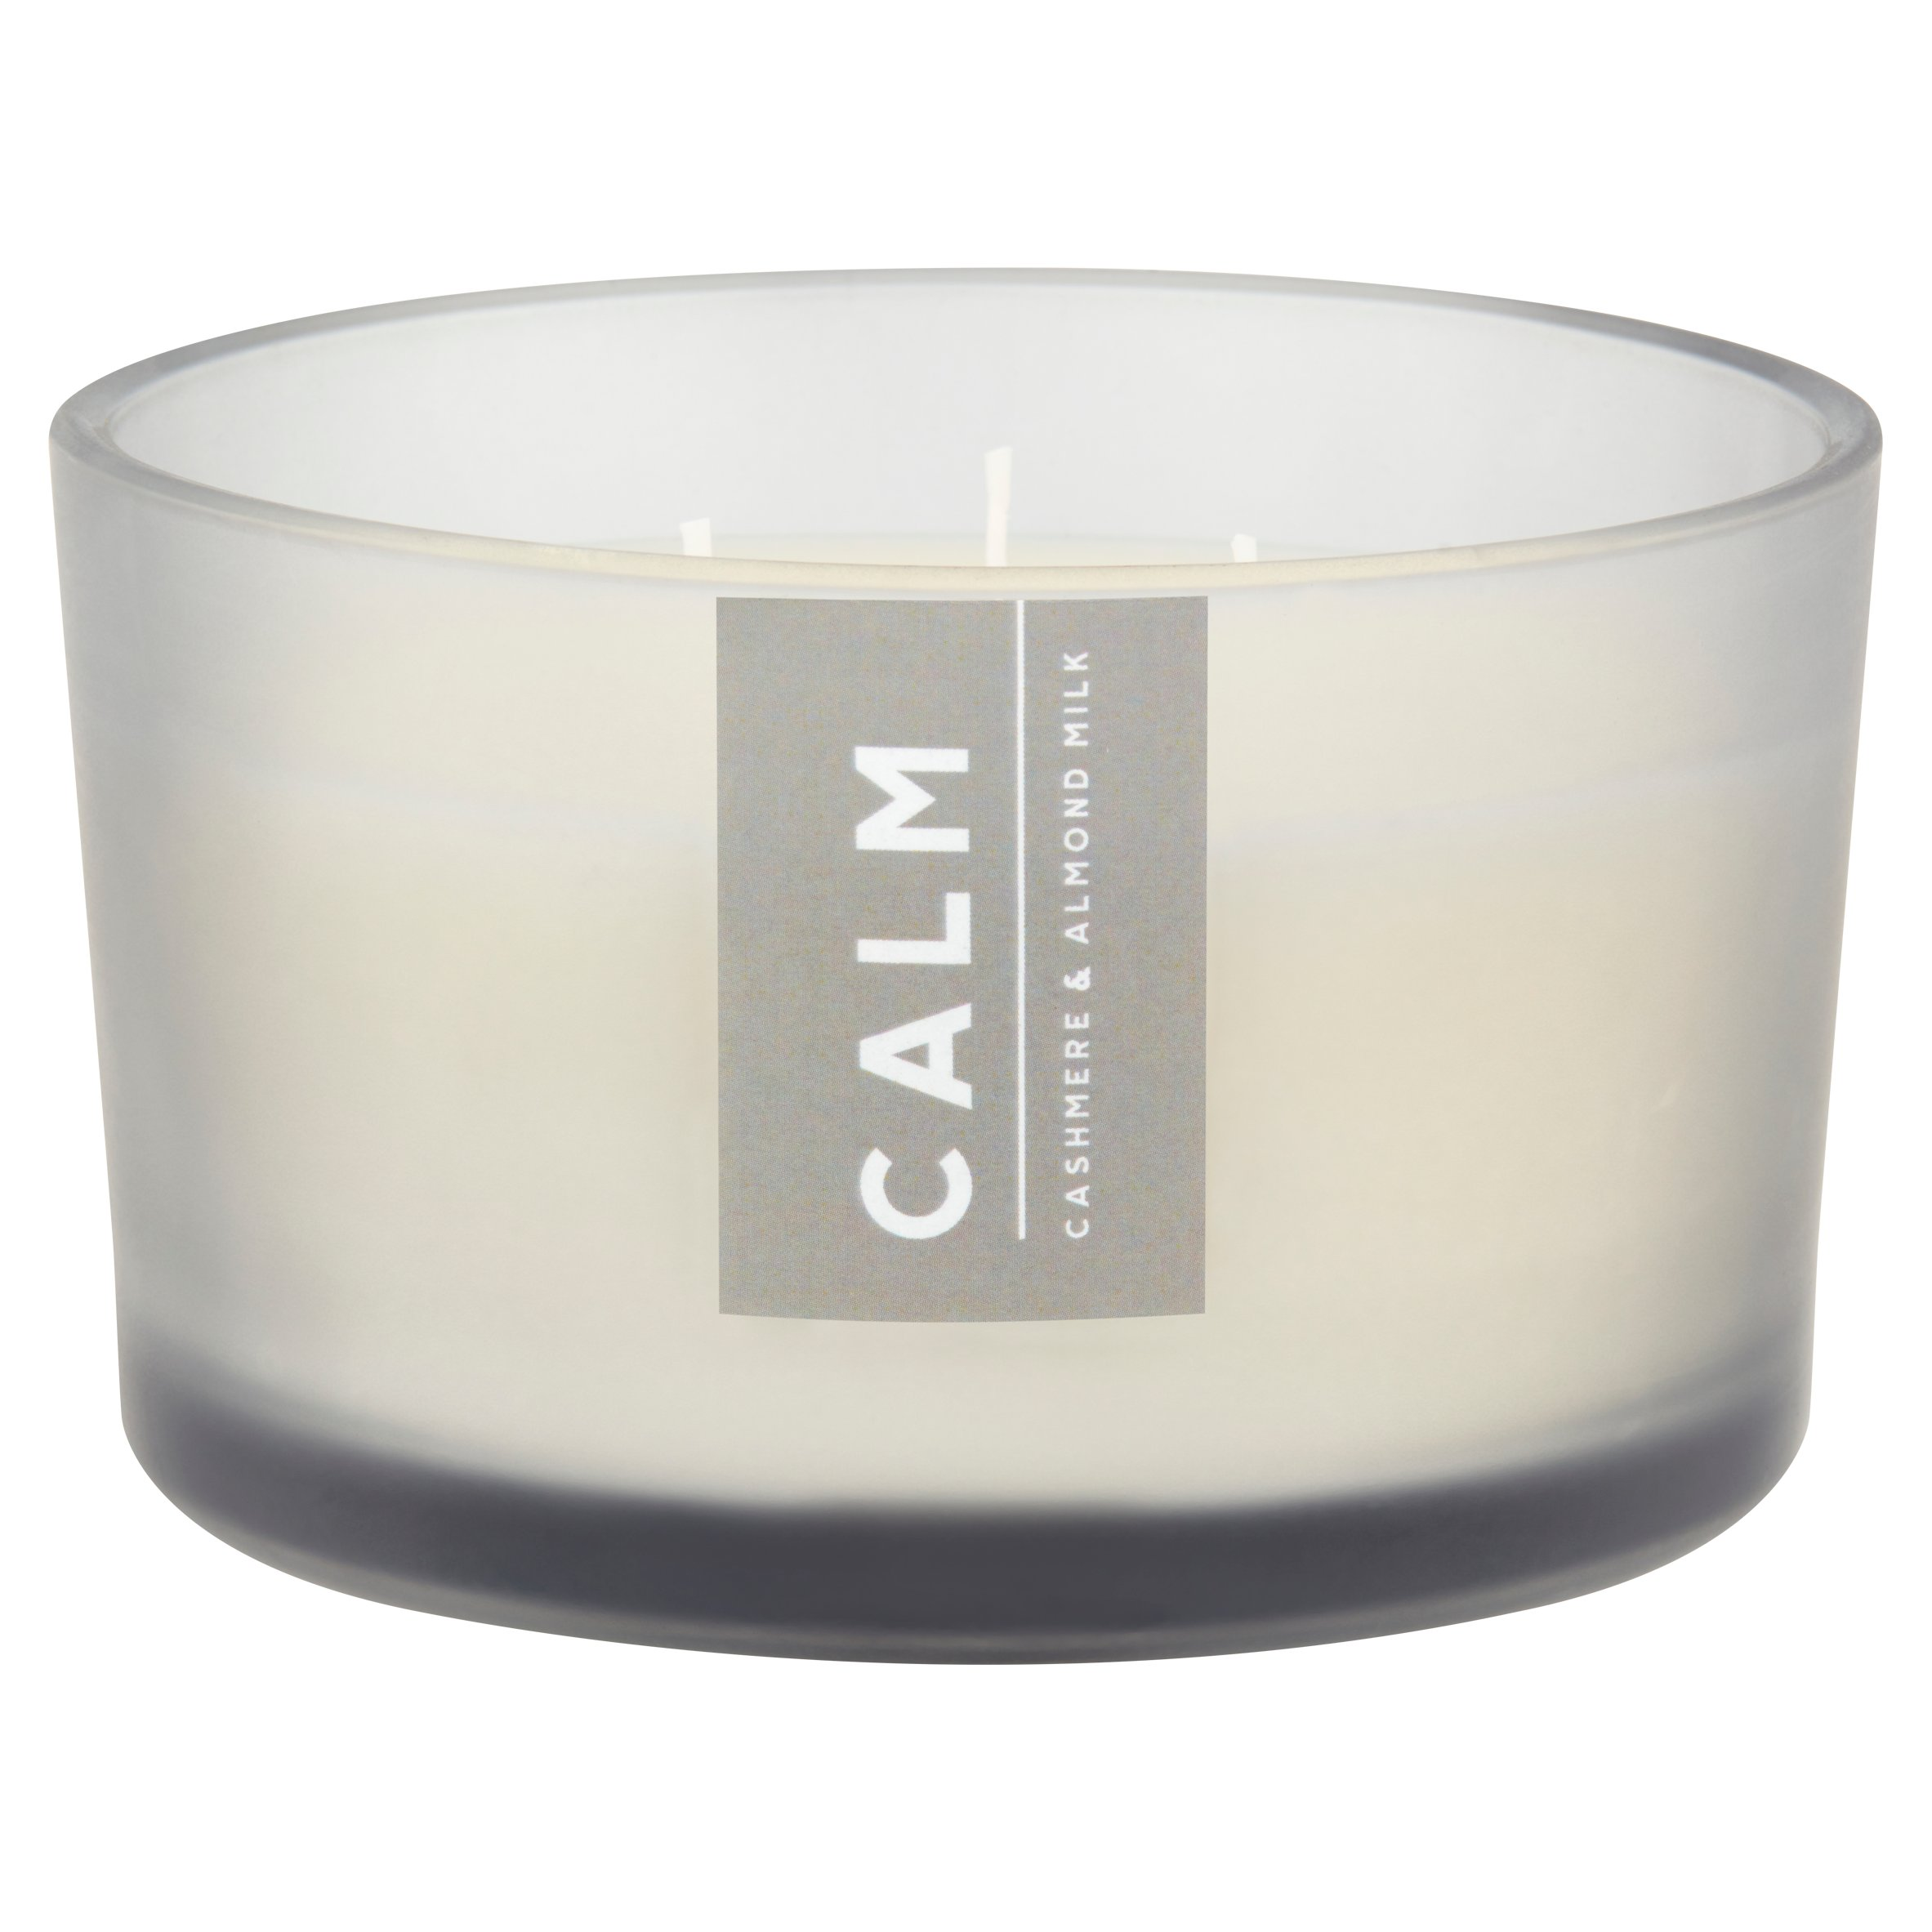 Tesco Spa Xl Scented Candle Cashmere & Almond Milk